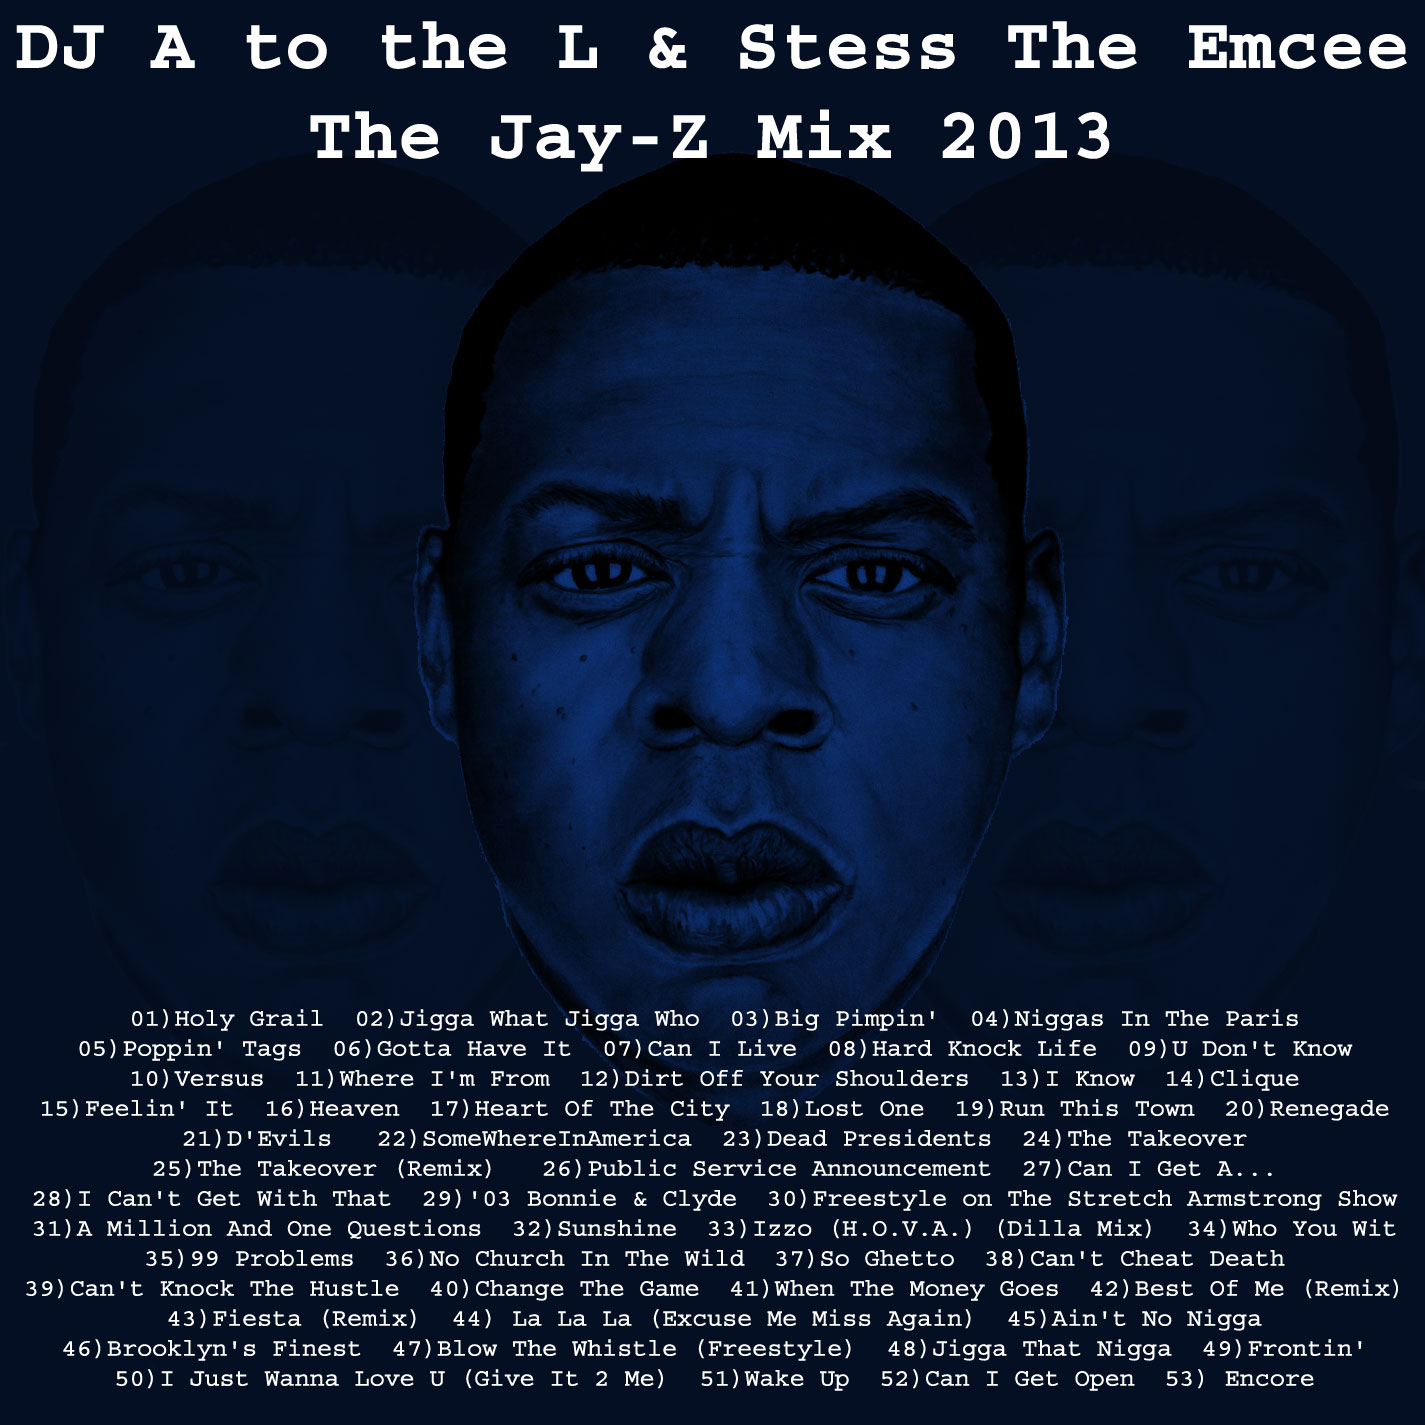 DJ A to the L - Jay-Z Tribute Mix 2013